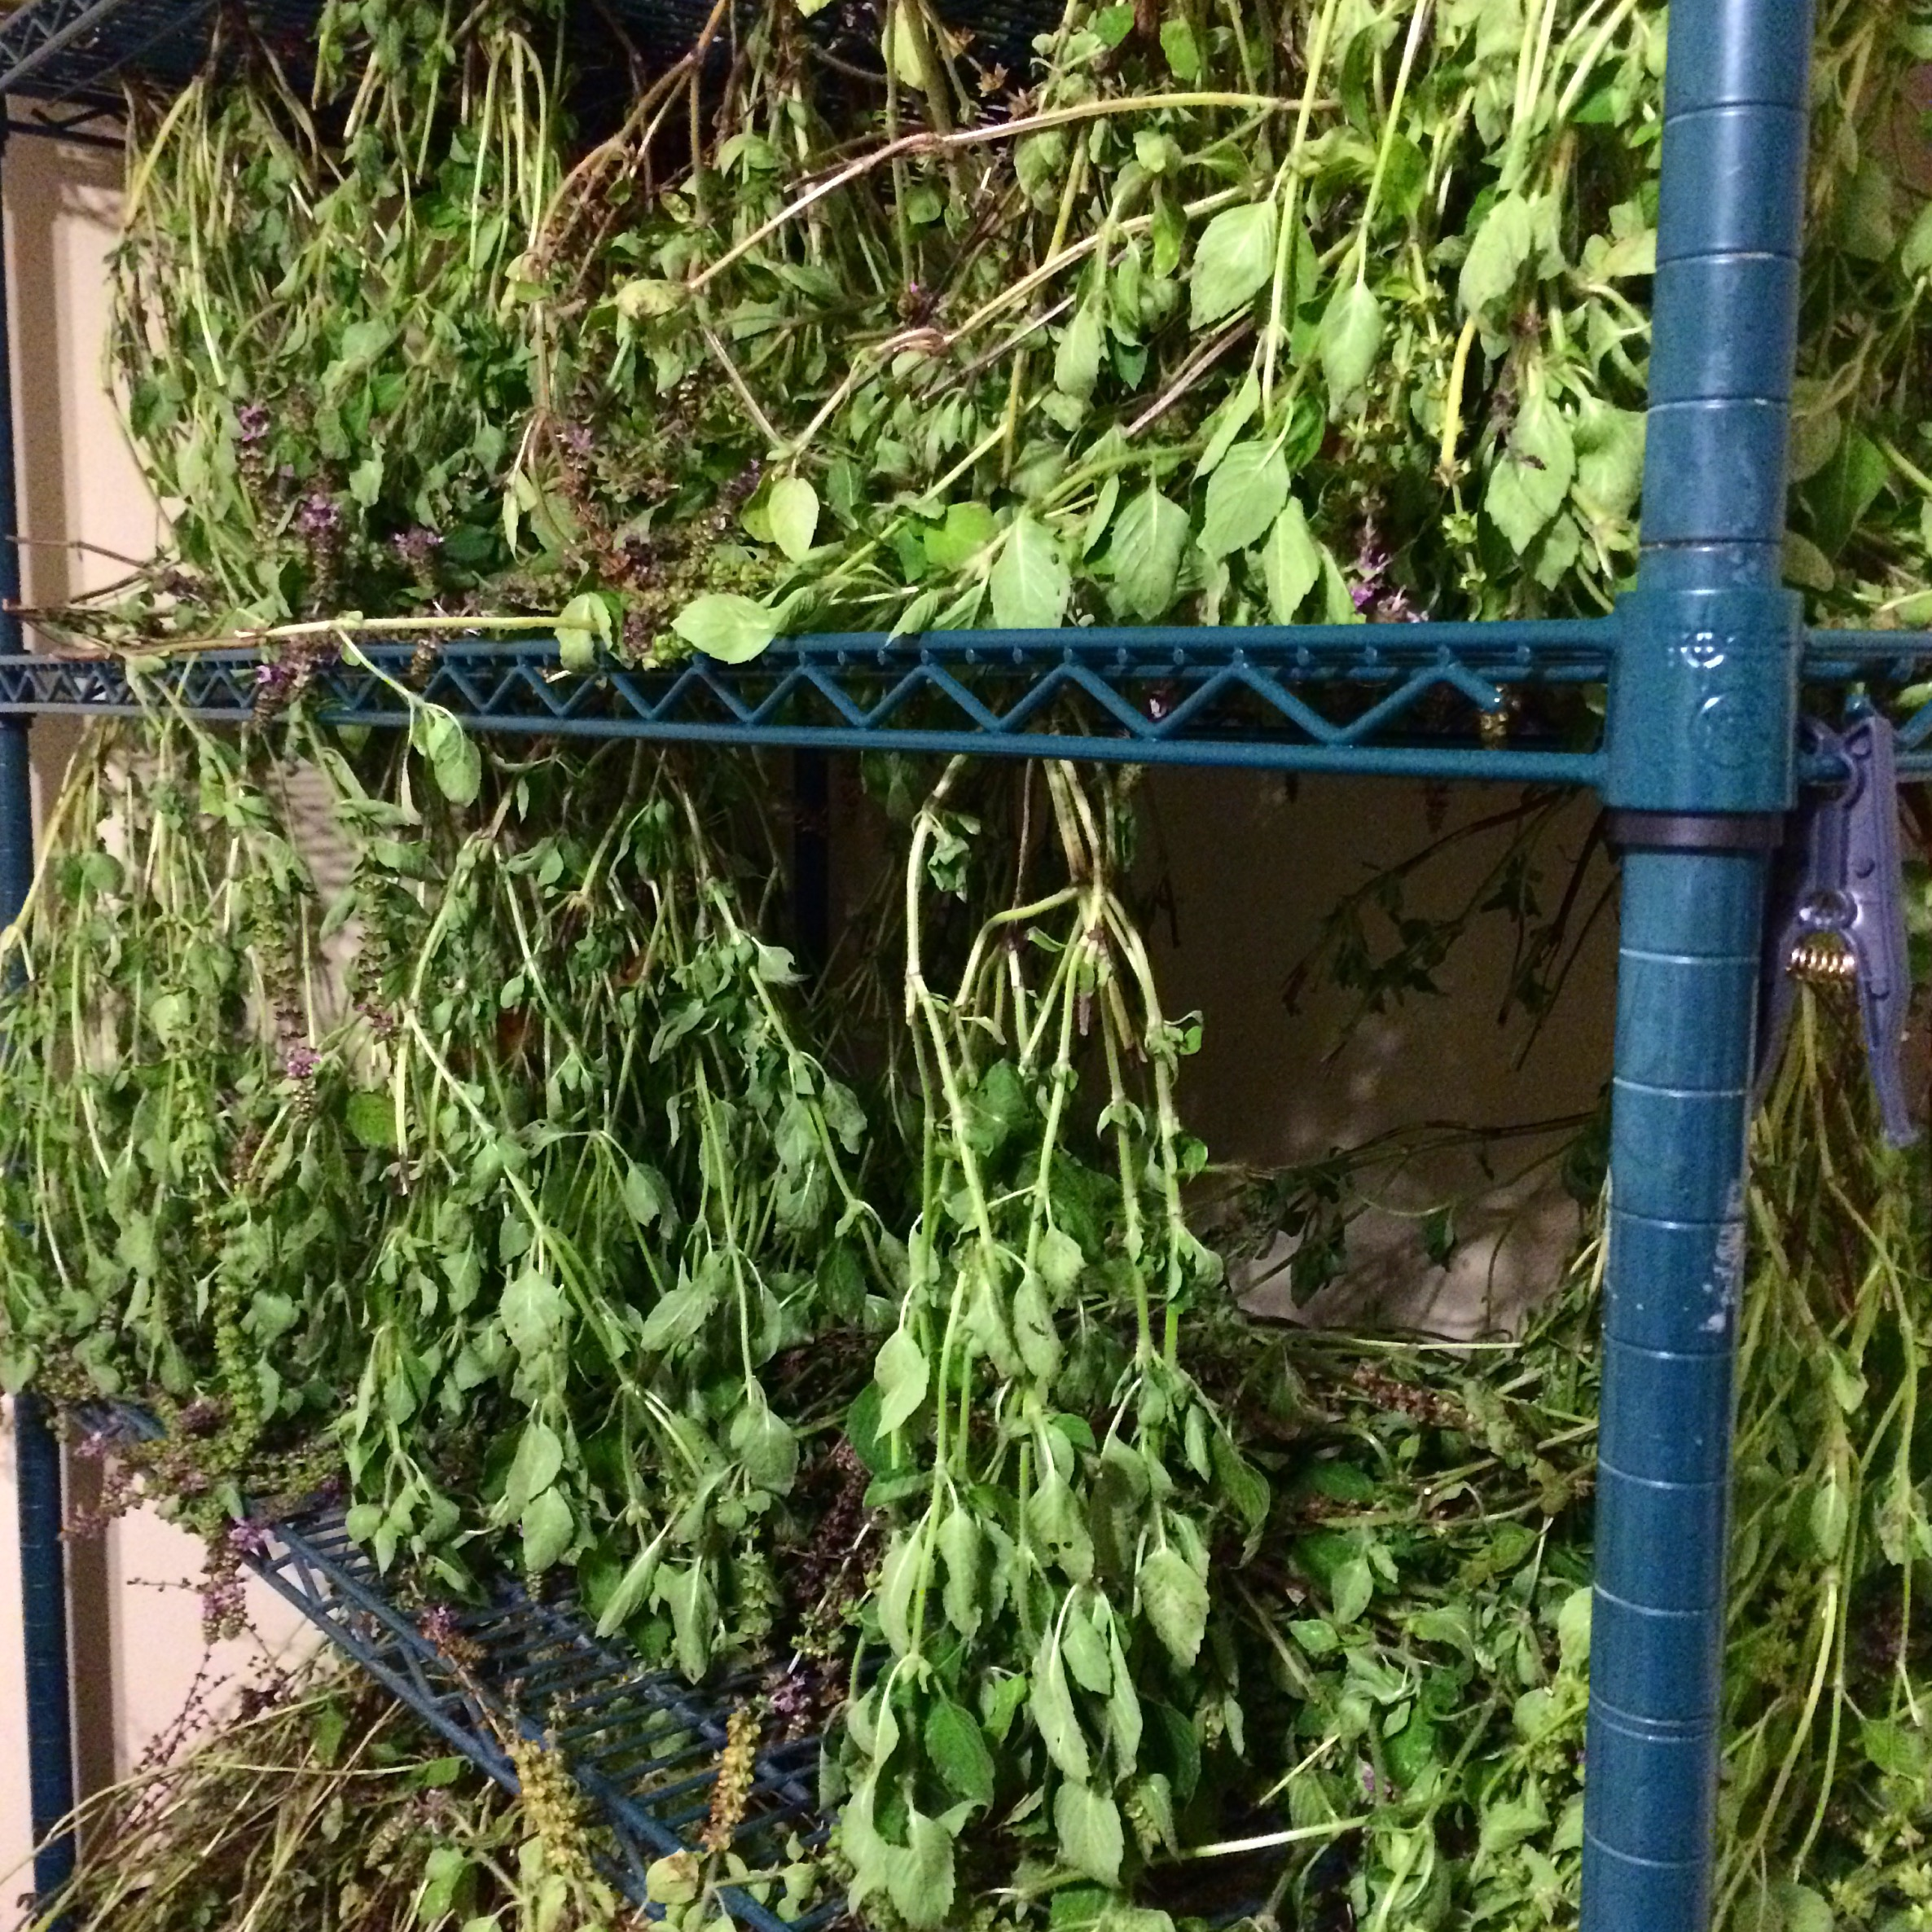 Extra herbs can be dried for tea.